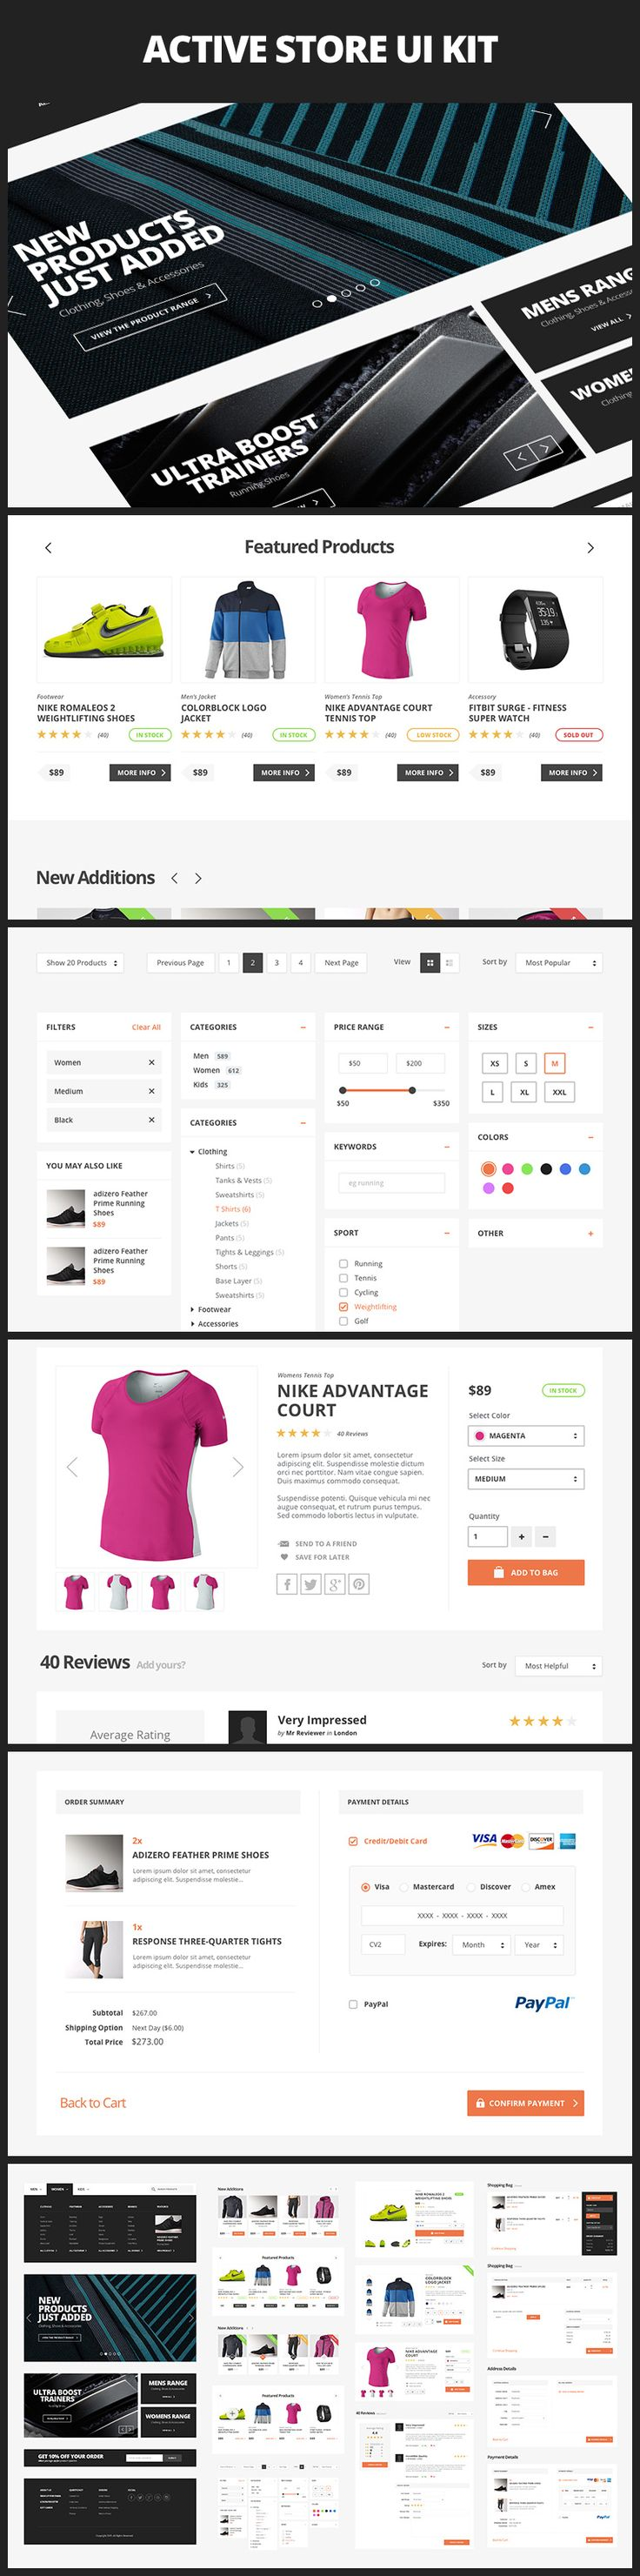 Active Store UI Kit is a collection of big, bold and clean user interface elements for ecommerce projects. Included are navigation and promo blocks, catalog elements, product cards, cart/checkout pages and many more flat UI elements. All of the included elements have been meticulously designed with vector shapes in Photoshop and fit neatly into a 12 column grid.